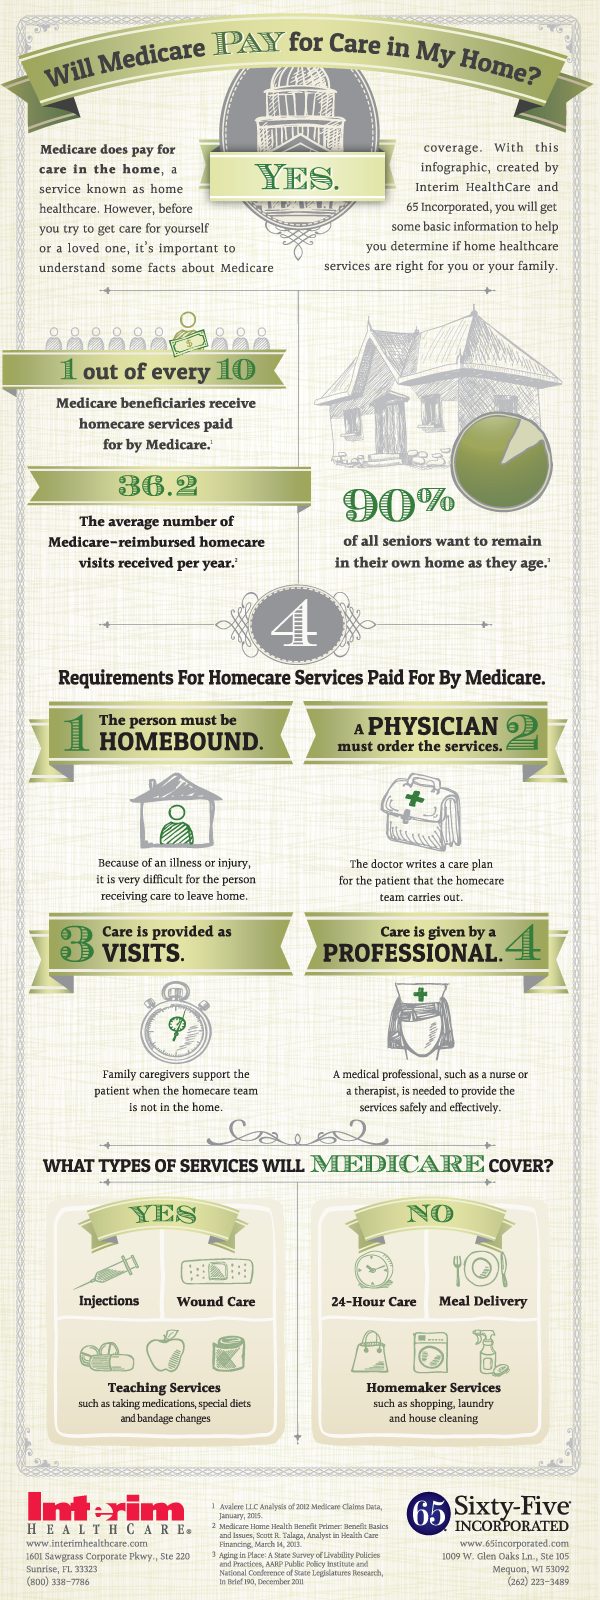 Will-Medicare-Pay-Homecare-Infographic-OL.png